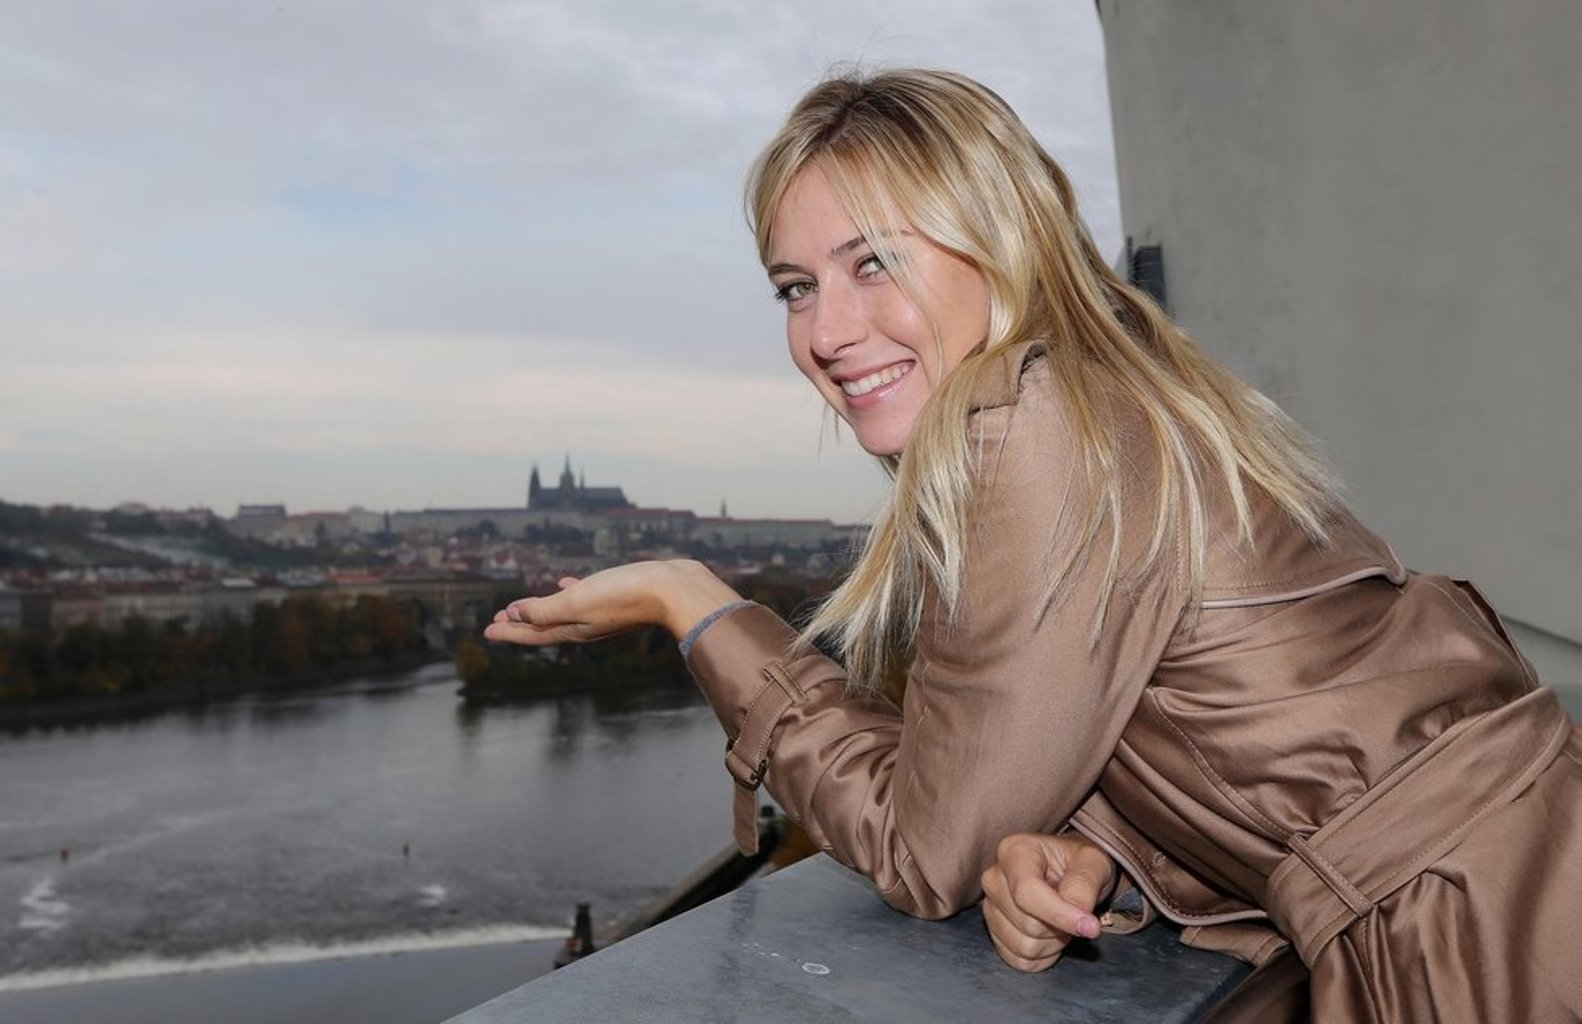 Prague قلعہ at your fingertips. Maria in Prague